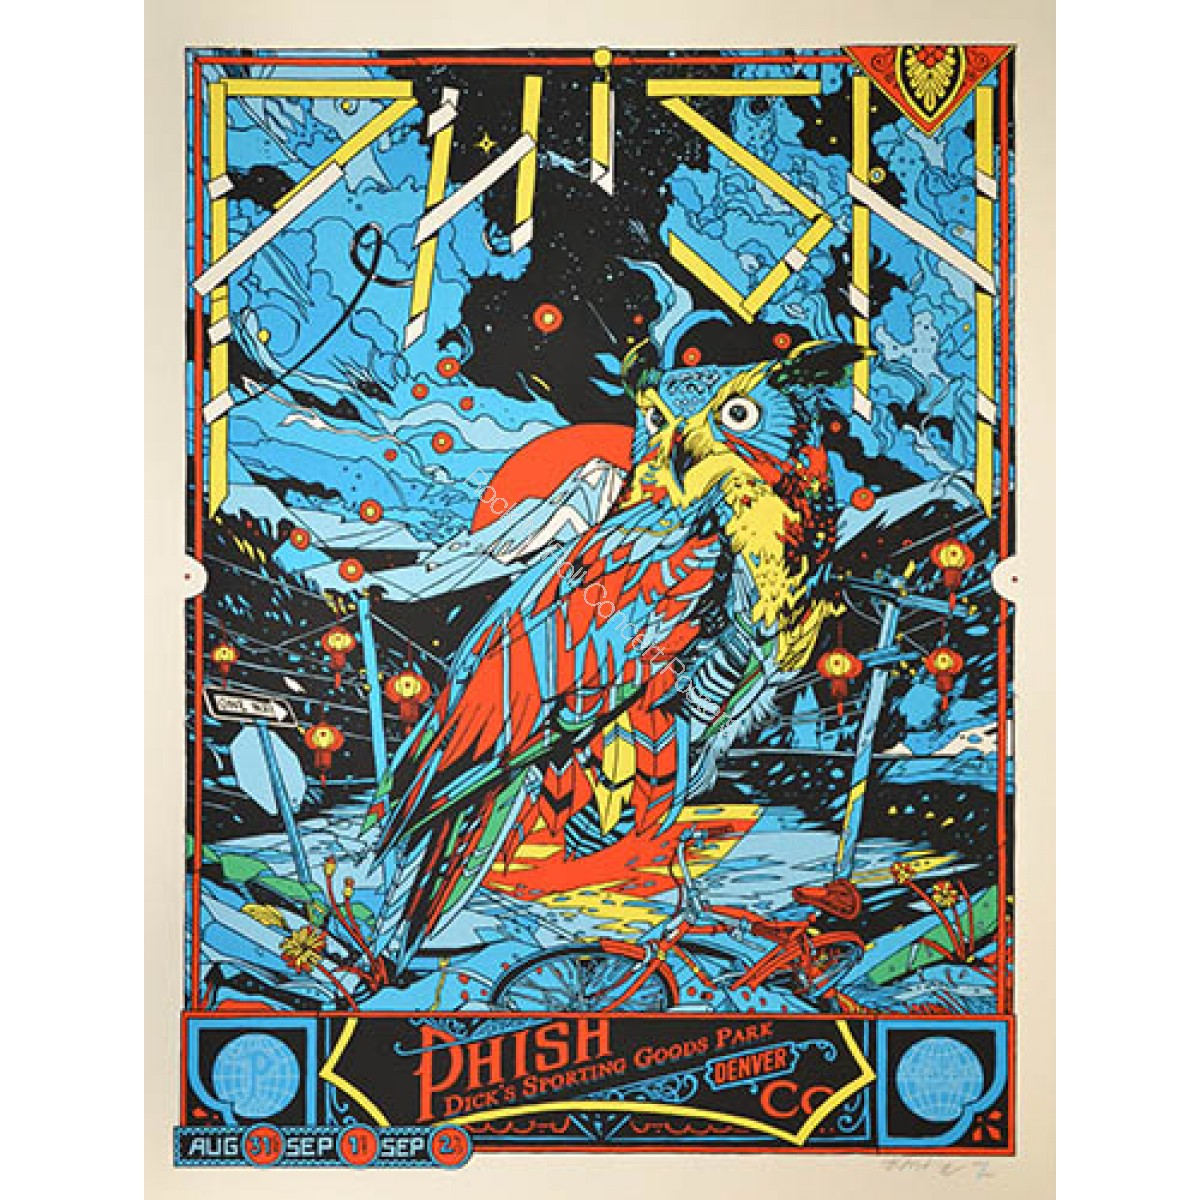 Phish Dick's Sporting Goods 2012 Official Silk Screen Print Limited Edition of 900  (Blue Variant)